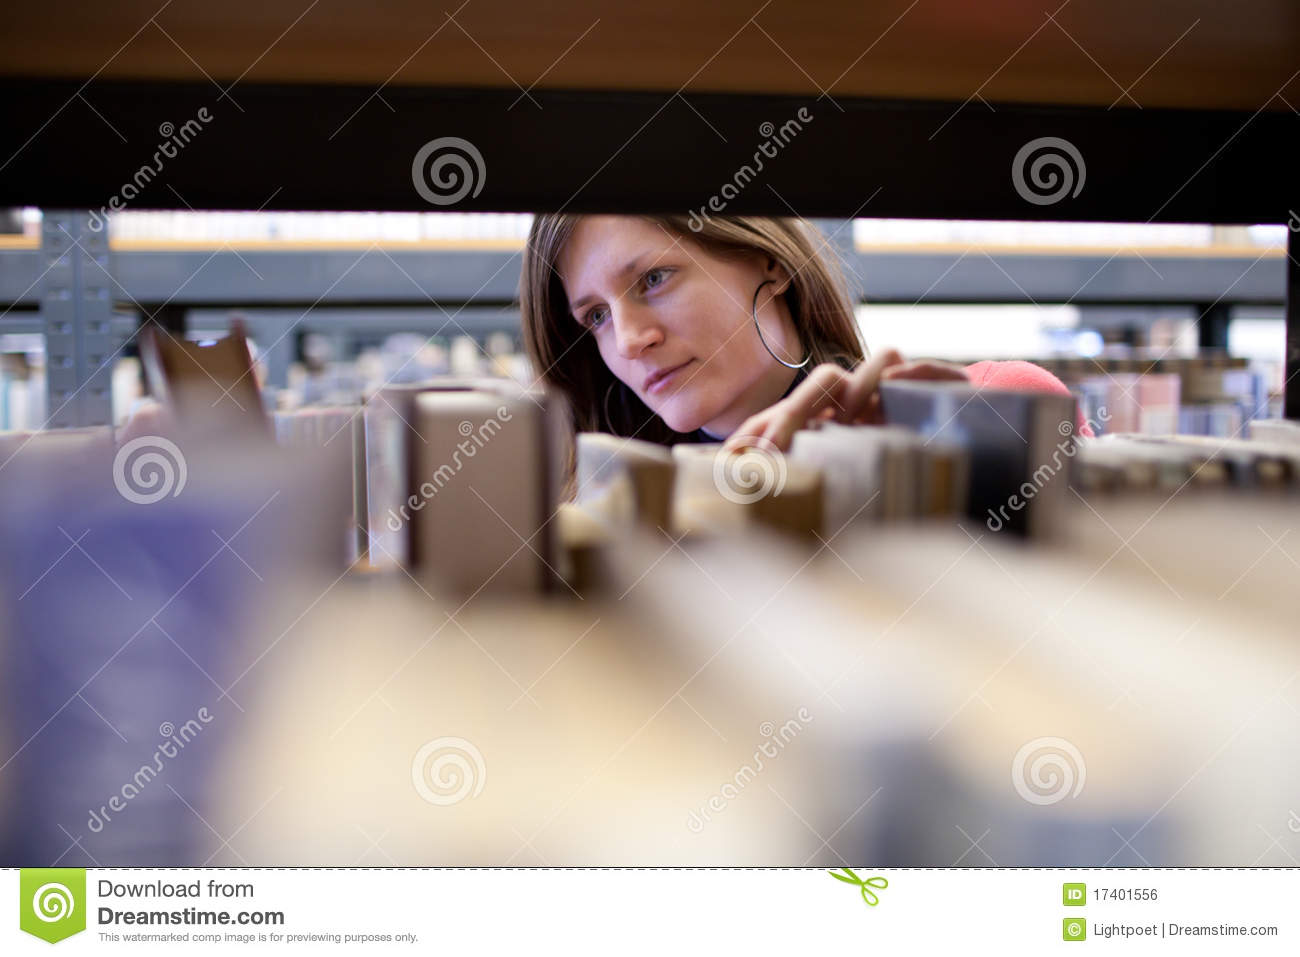 Female college student in a library